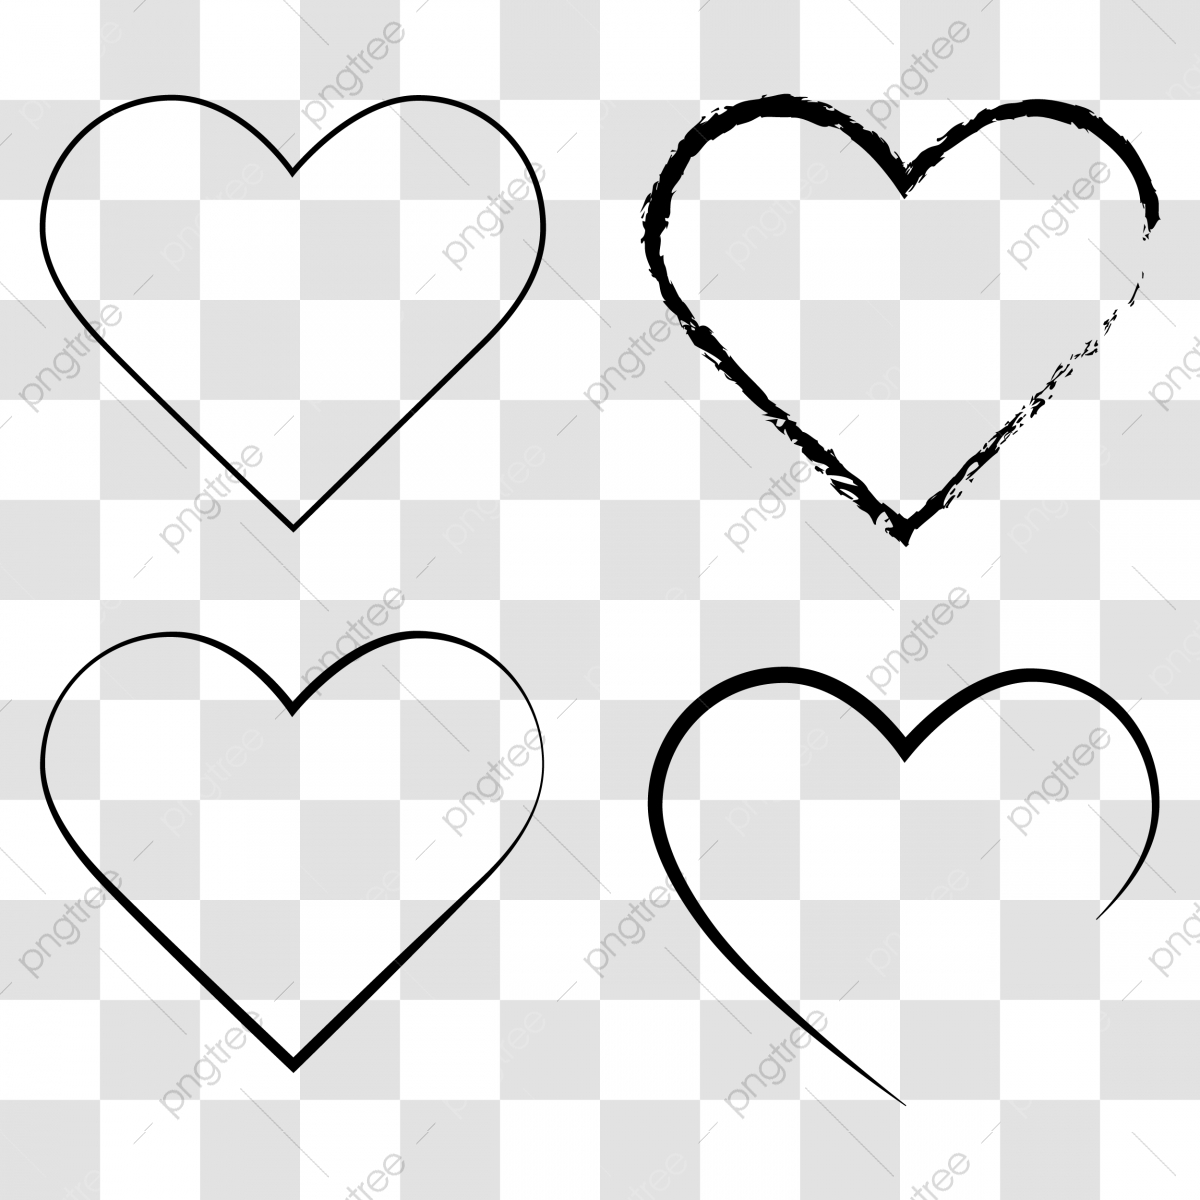 Set Icon Of Outline Heart Isolated Heart Outline Clipart Heart Icons Outline Icons Png And Vector With Transparent Background For Free Download Download icons in all formats or edit them for your designs. https pngtree com freepng set icon of outline heart isolated 5104497 html